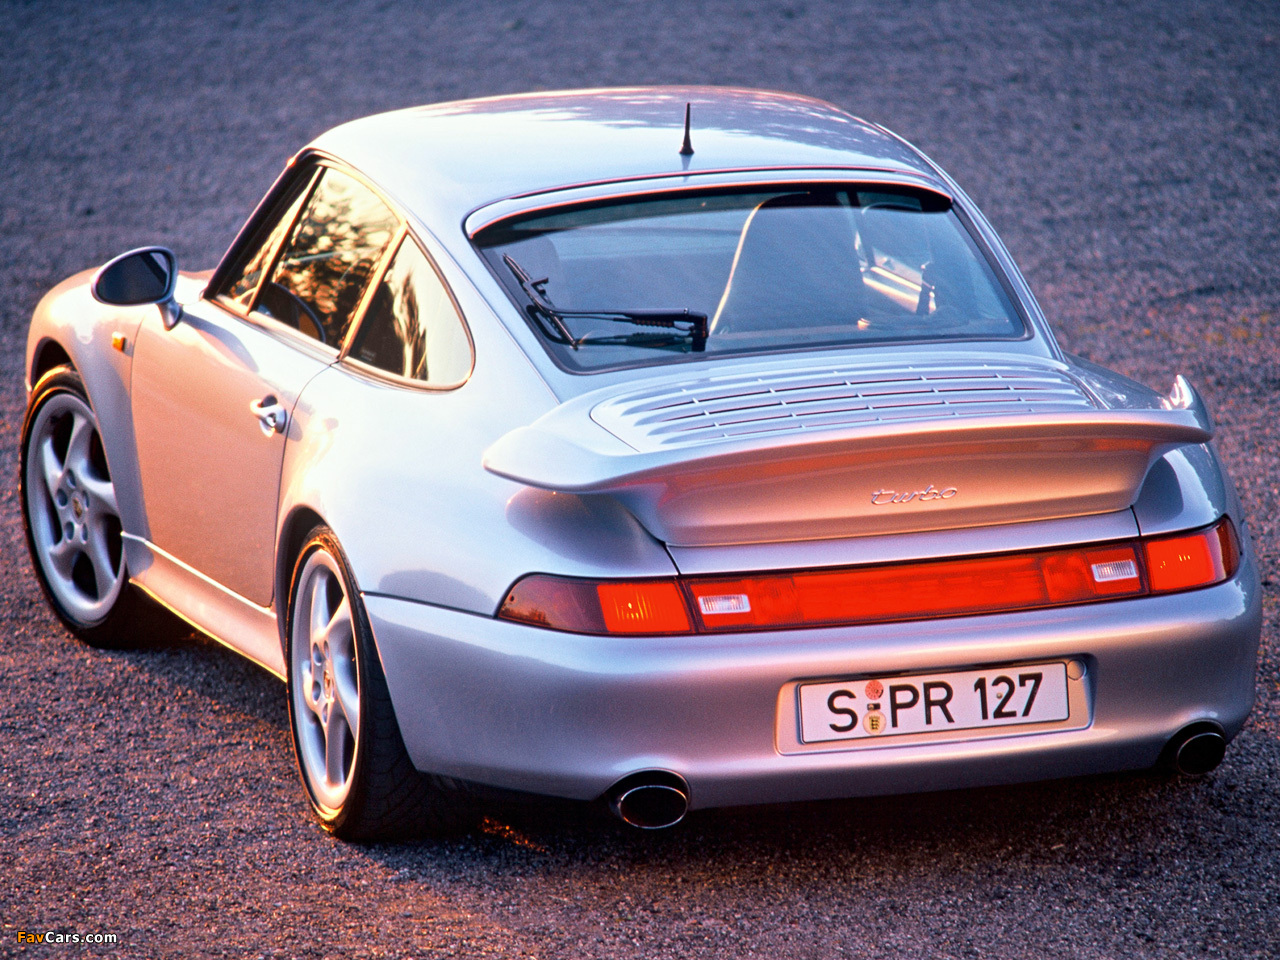 Porsche 911 Turbo 3 6 Coupe 993 1995 98 Wallpapers 1280x960